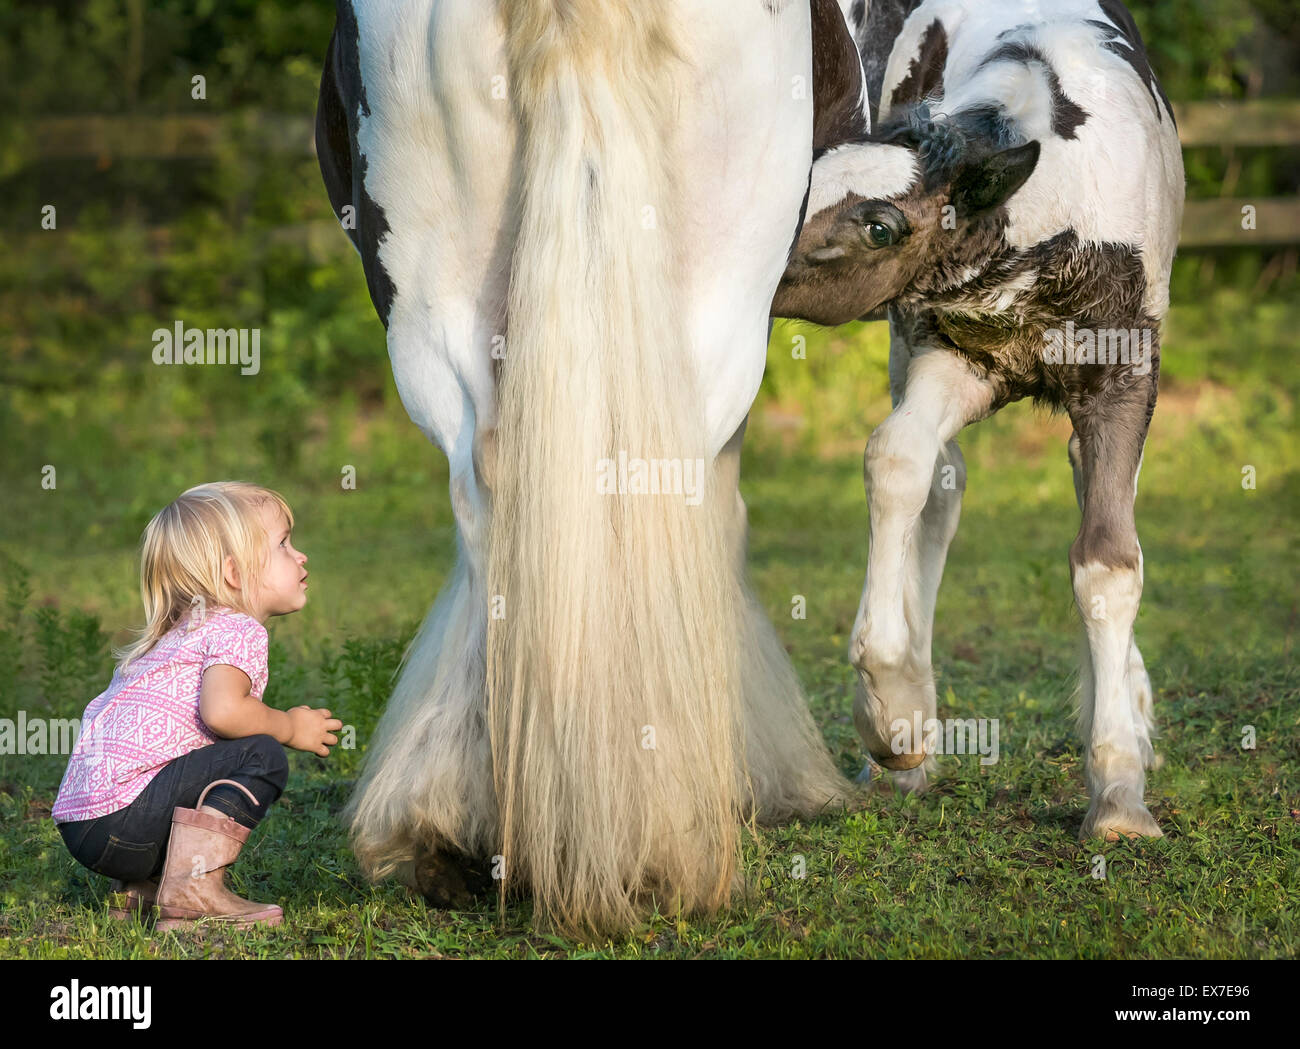 18 month old toddler peering under mares stomach at teats while foal nurses - Stock Image